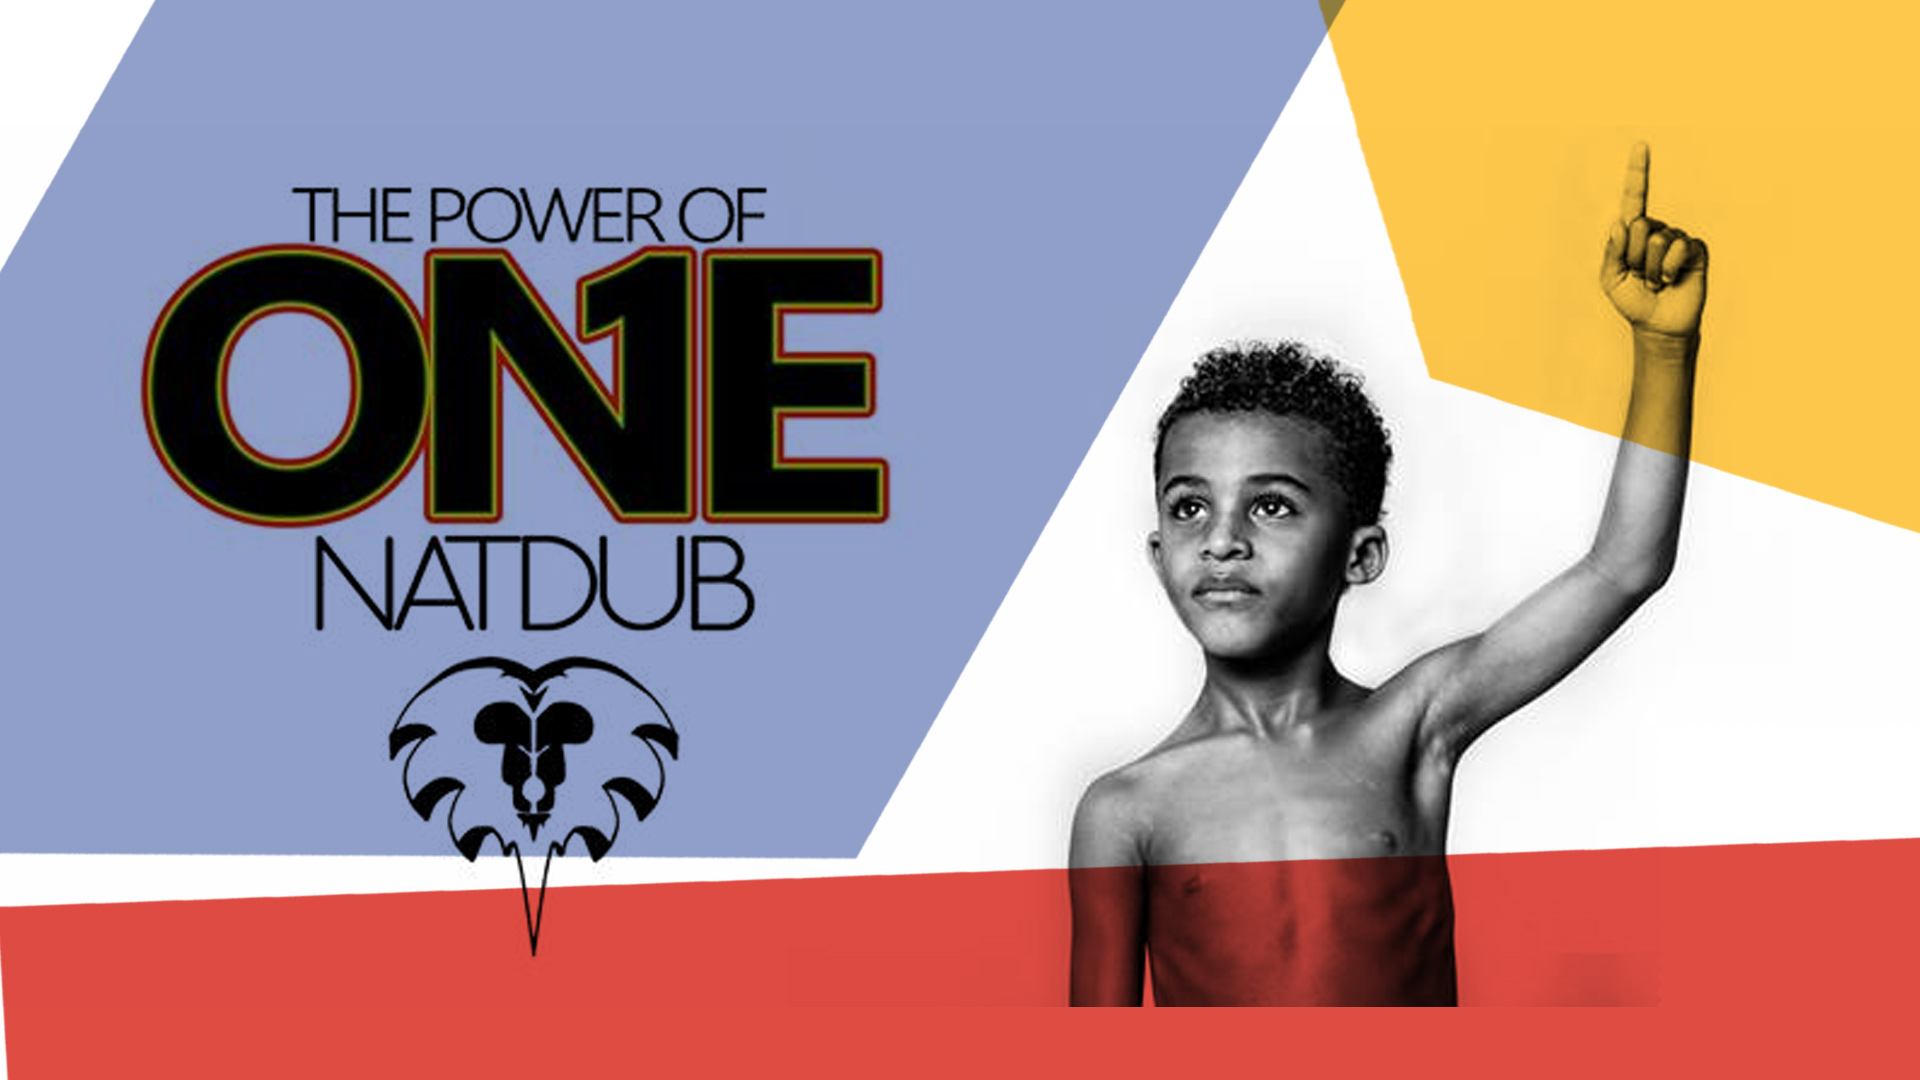 """The Power of One"", fiel principio de la NatDub"